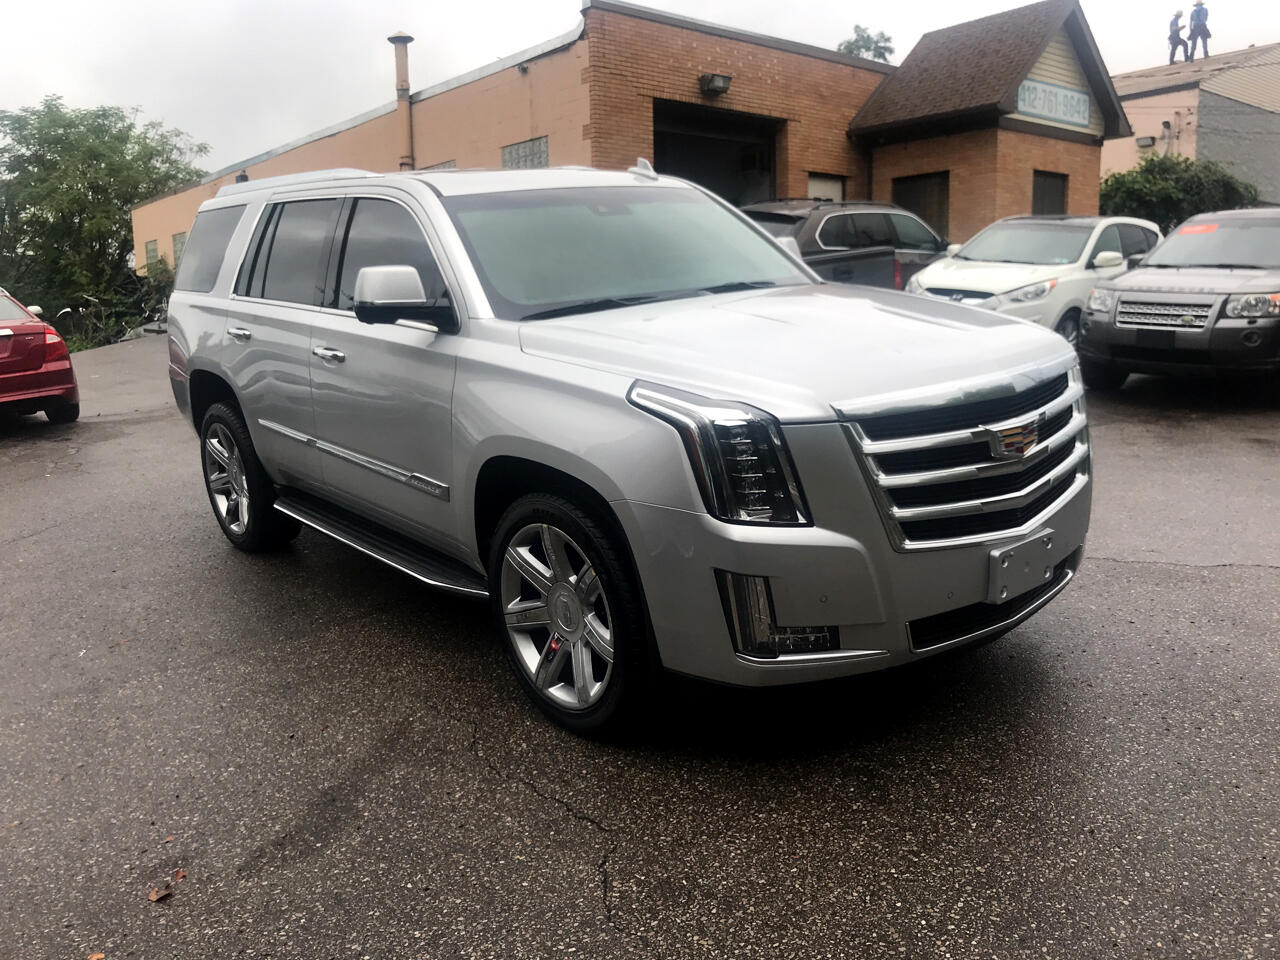 2016 Cadillac Escalade Luxury 4WD